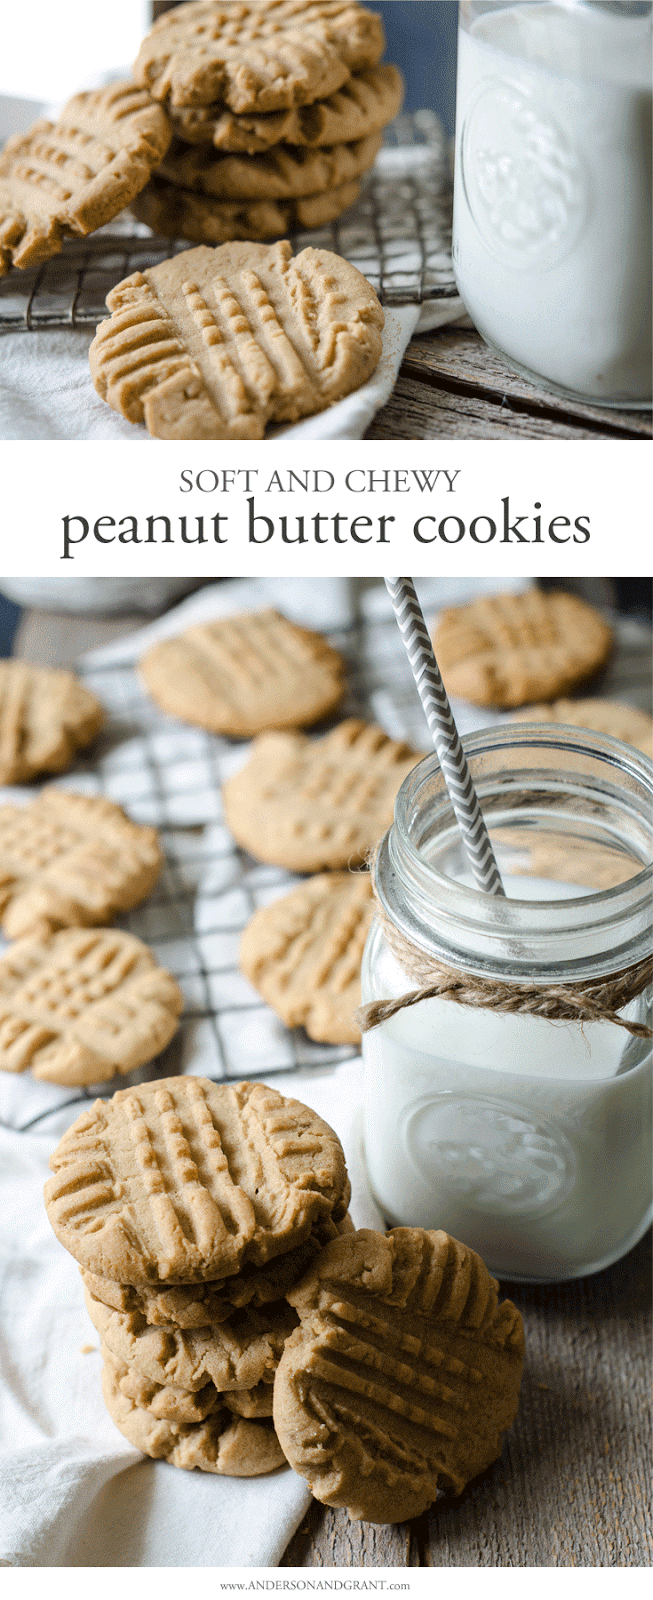 The perfect recipe for peanut butter cookies that are soft, chewy, and full of flavor.  Get the no-fail recipe at www.andersonandgrant.com